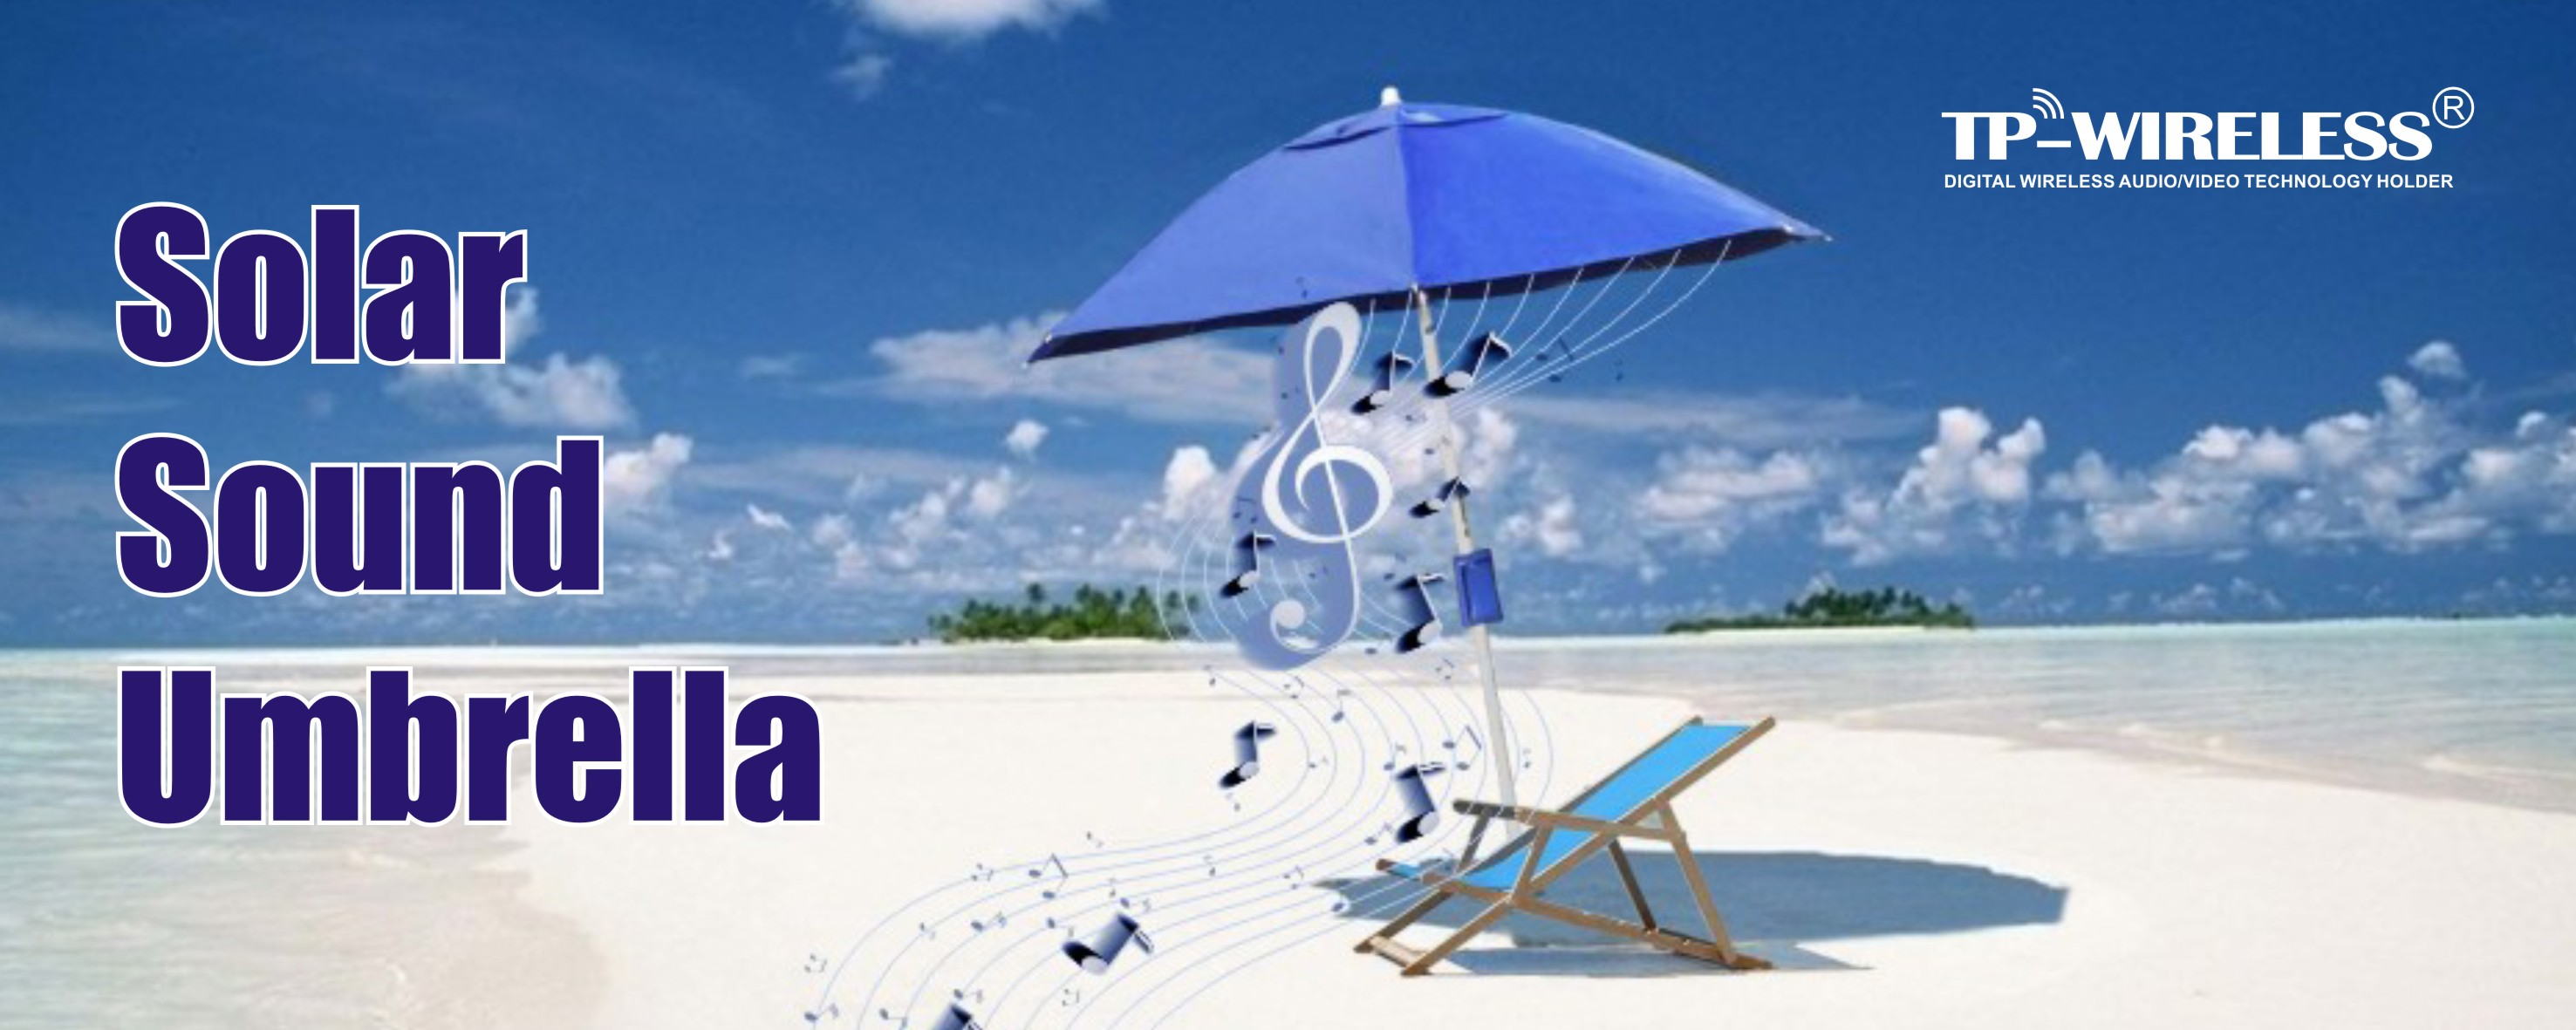 Smart Solar Power Umbrella Speaker System